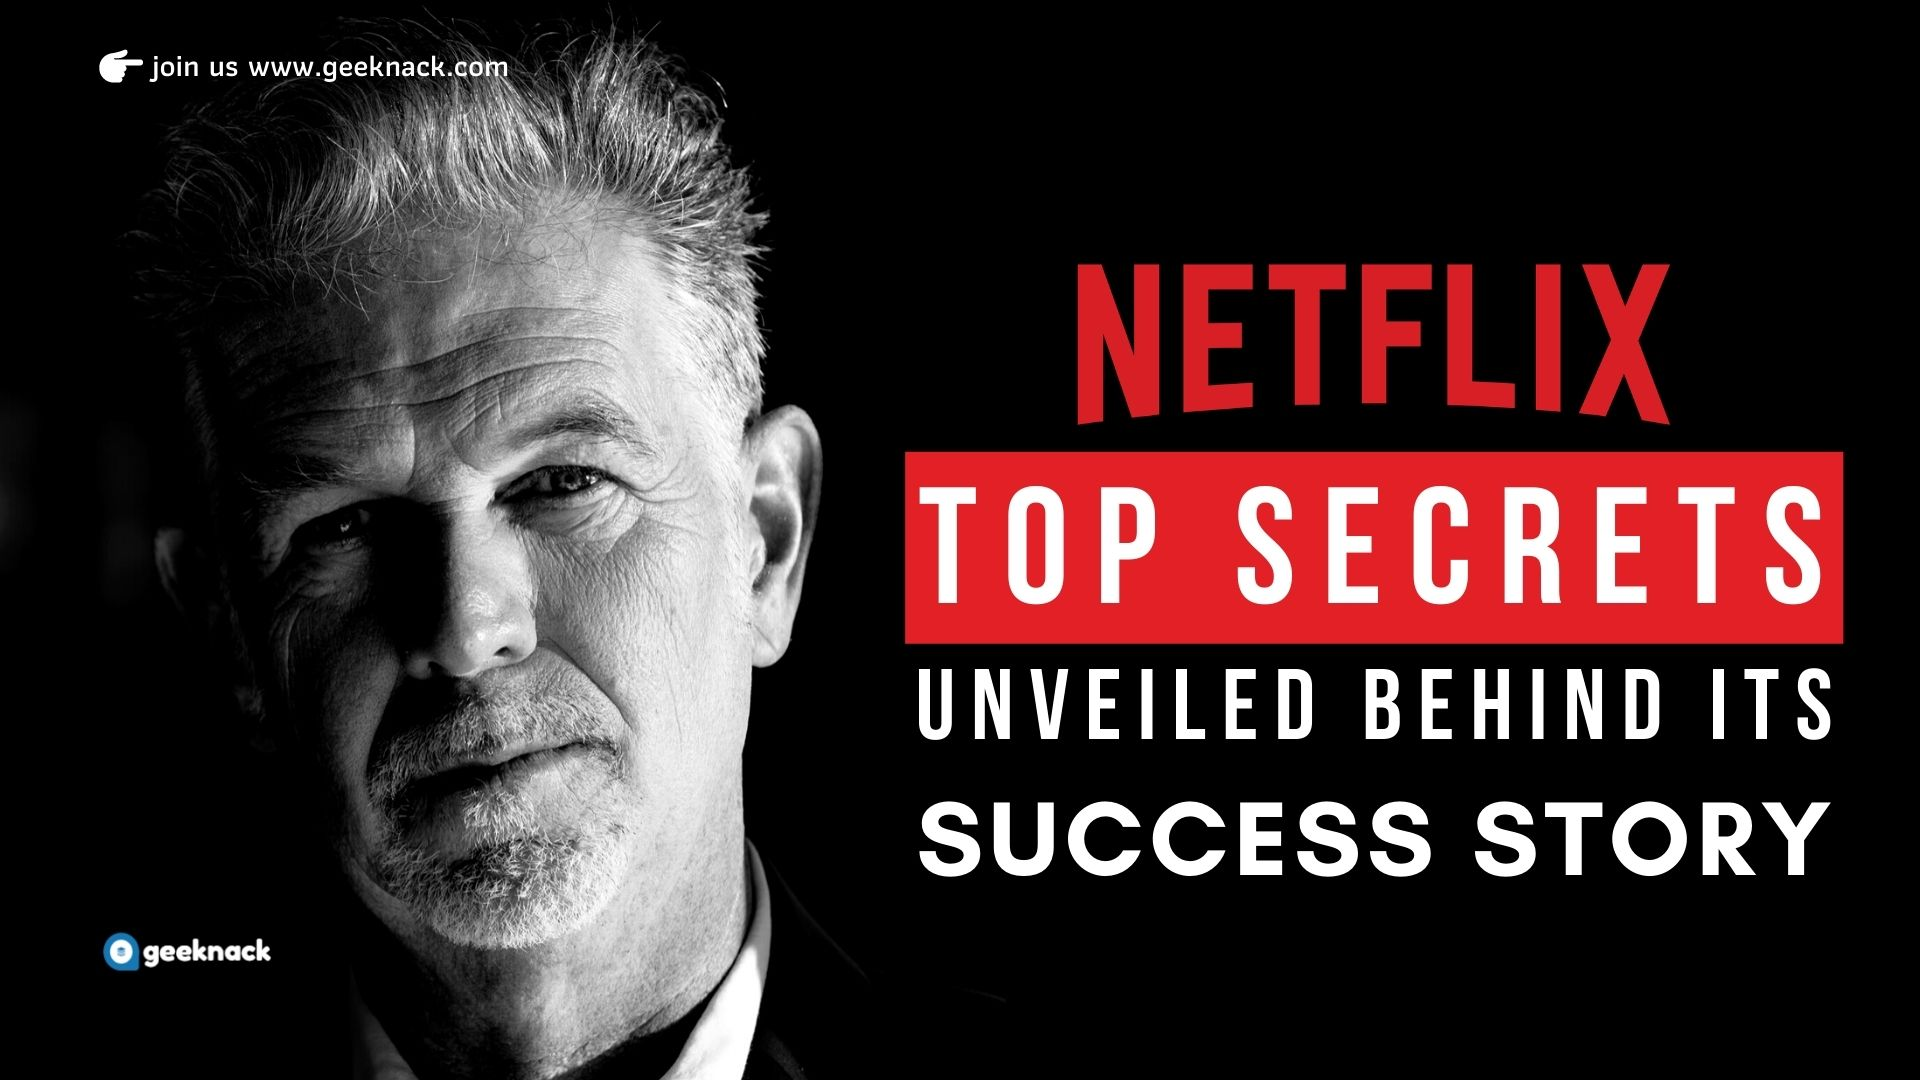 Netflix Top Secrets Unveiled Behind Its Success Story